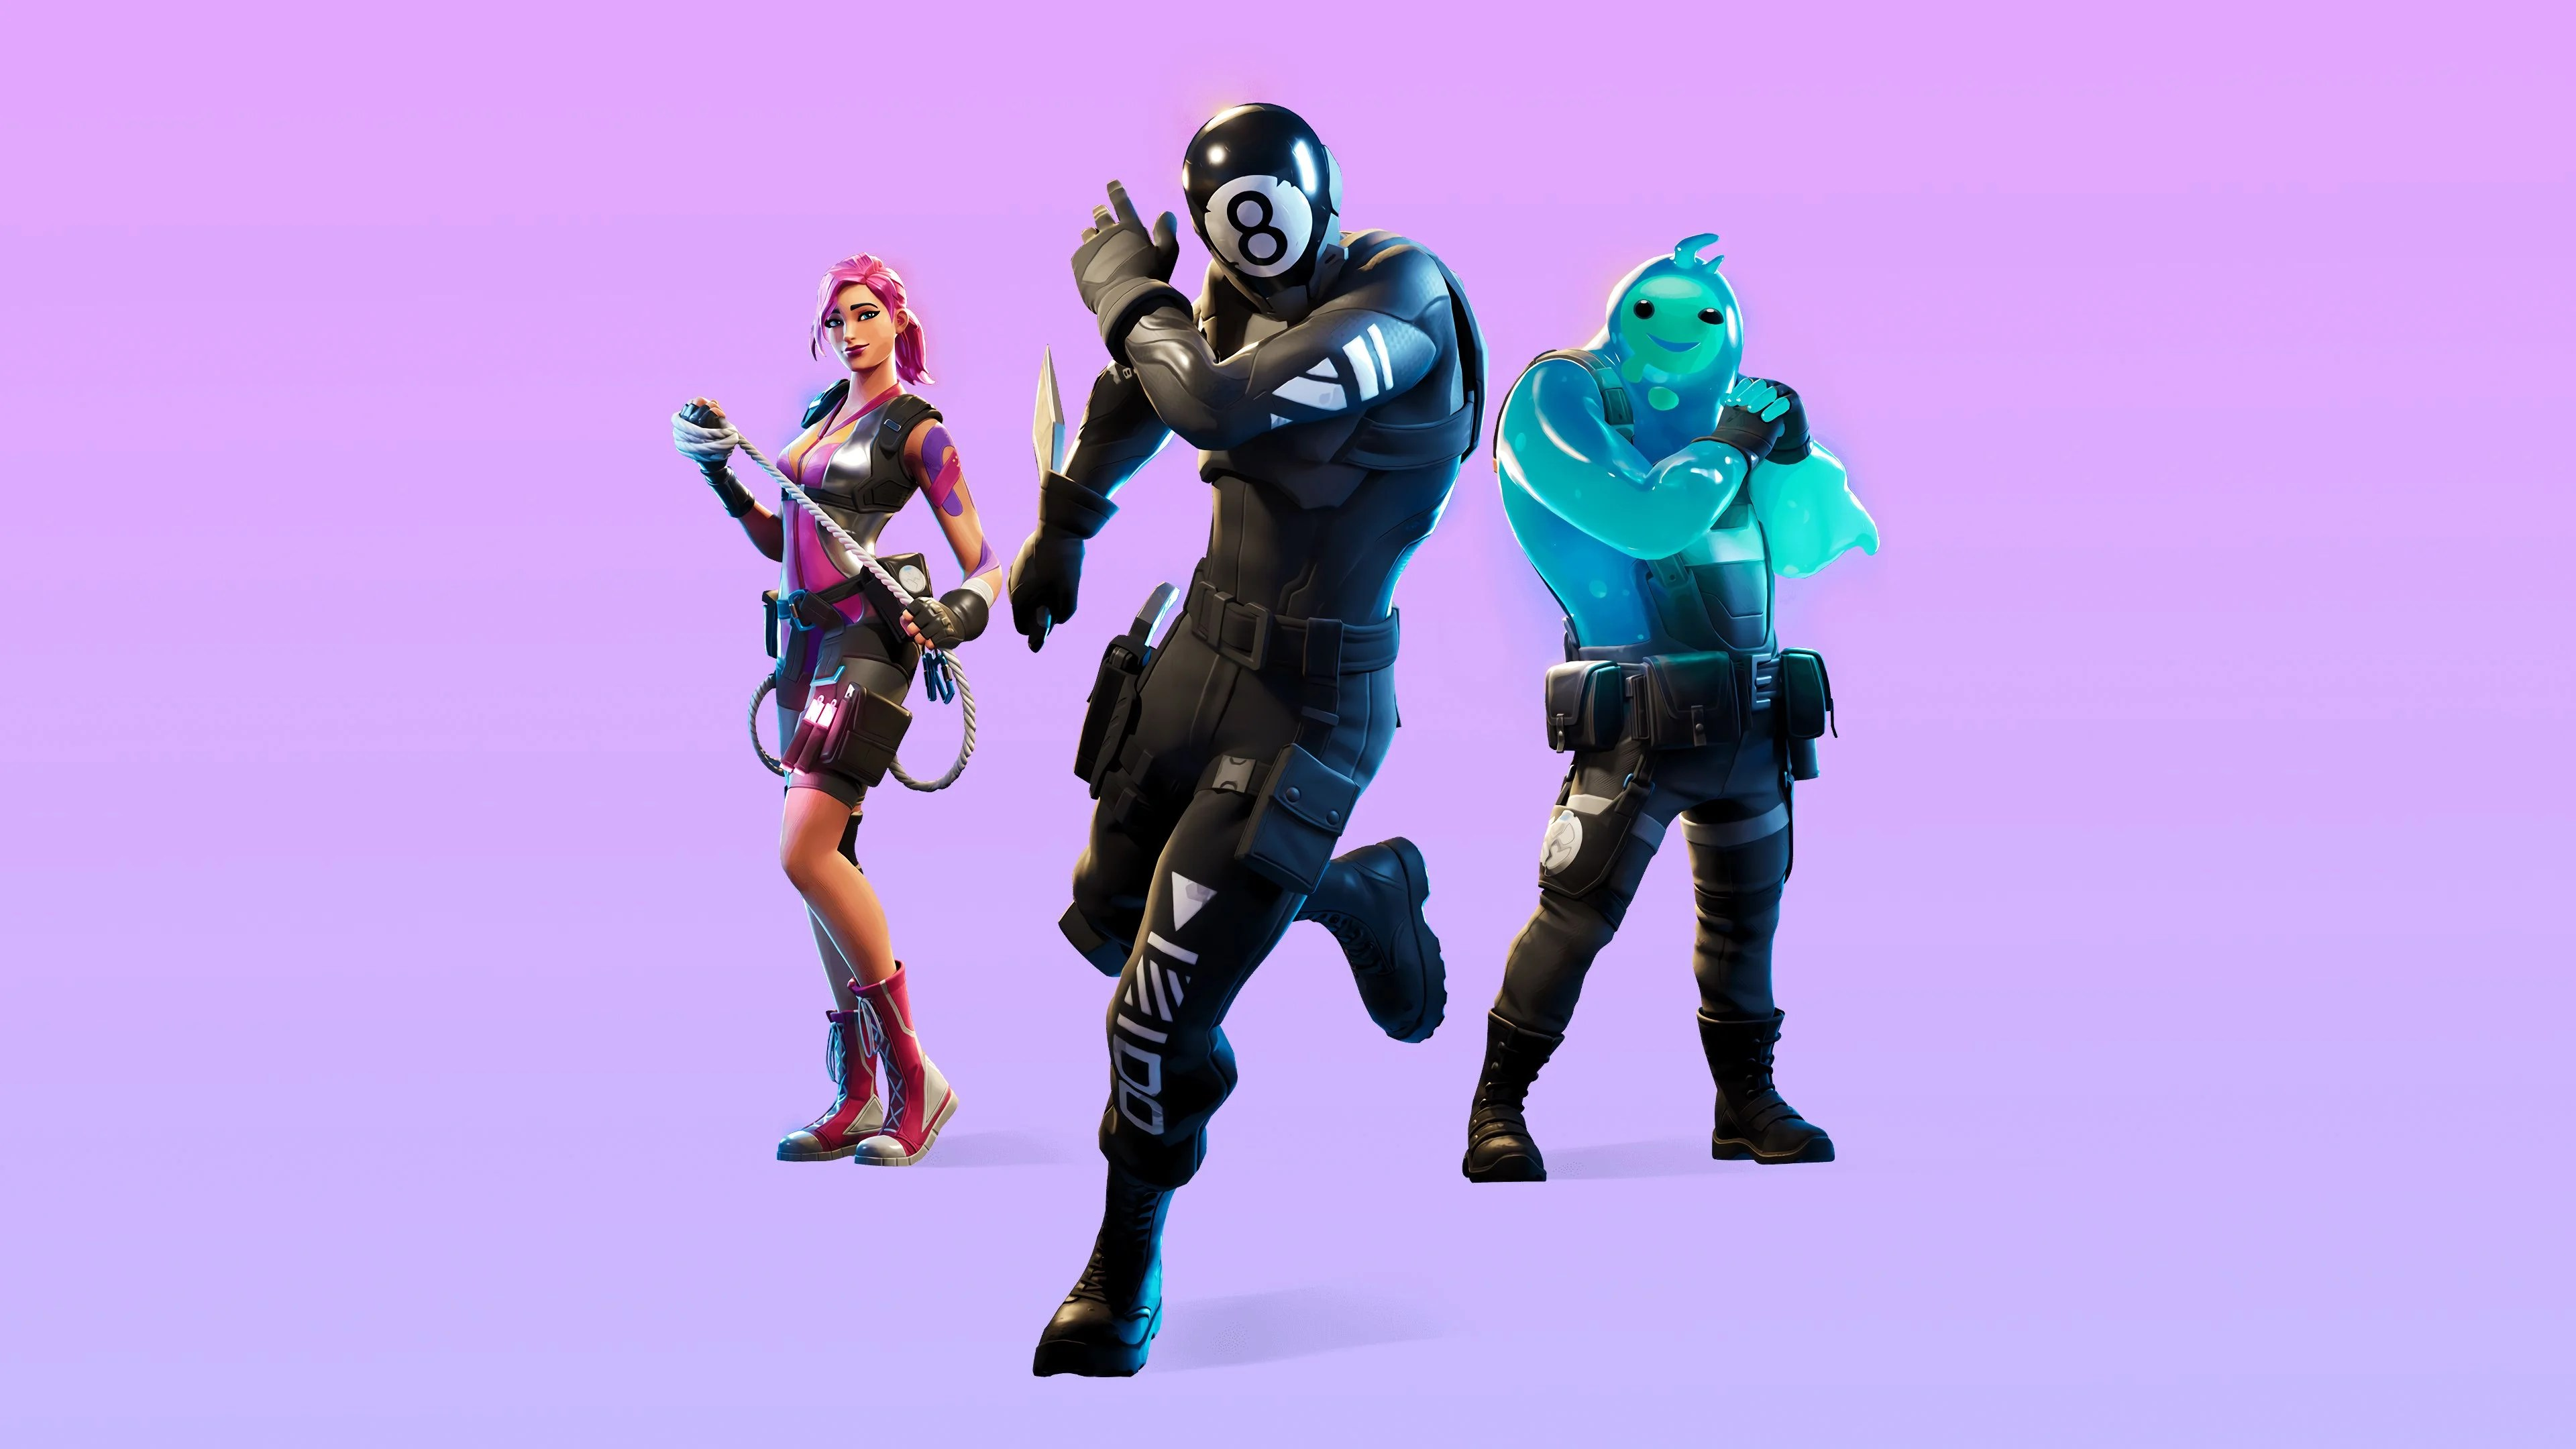 Fortnite Chapter 2 Wallpapers Top Free Fortnite Chapter 2 Backgrounds Wallpaperaccess